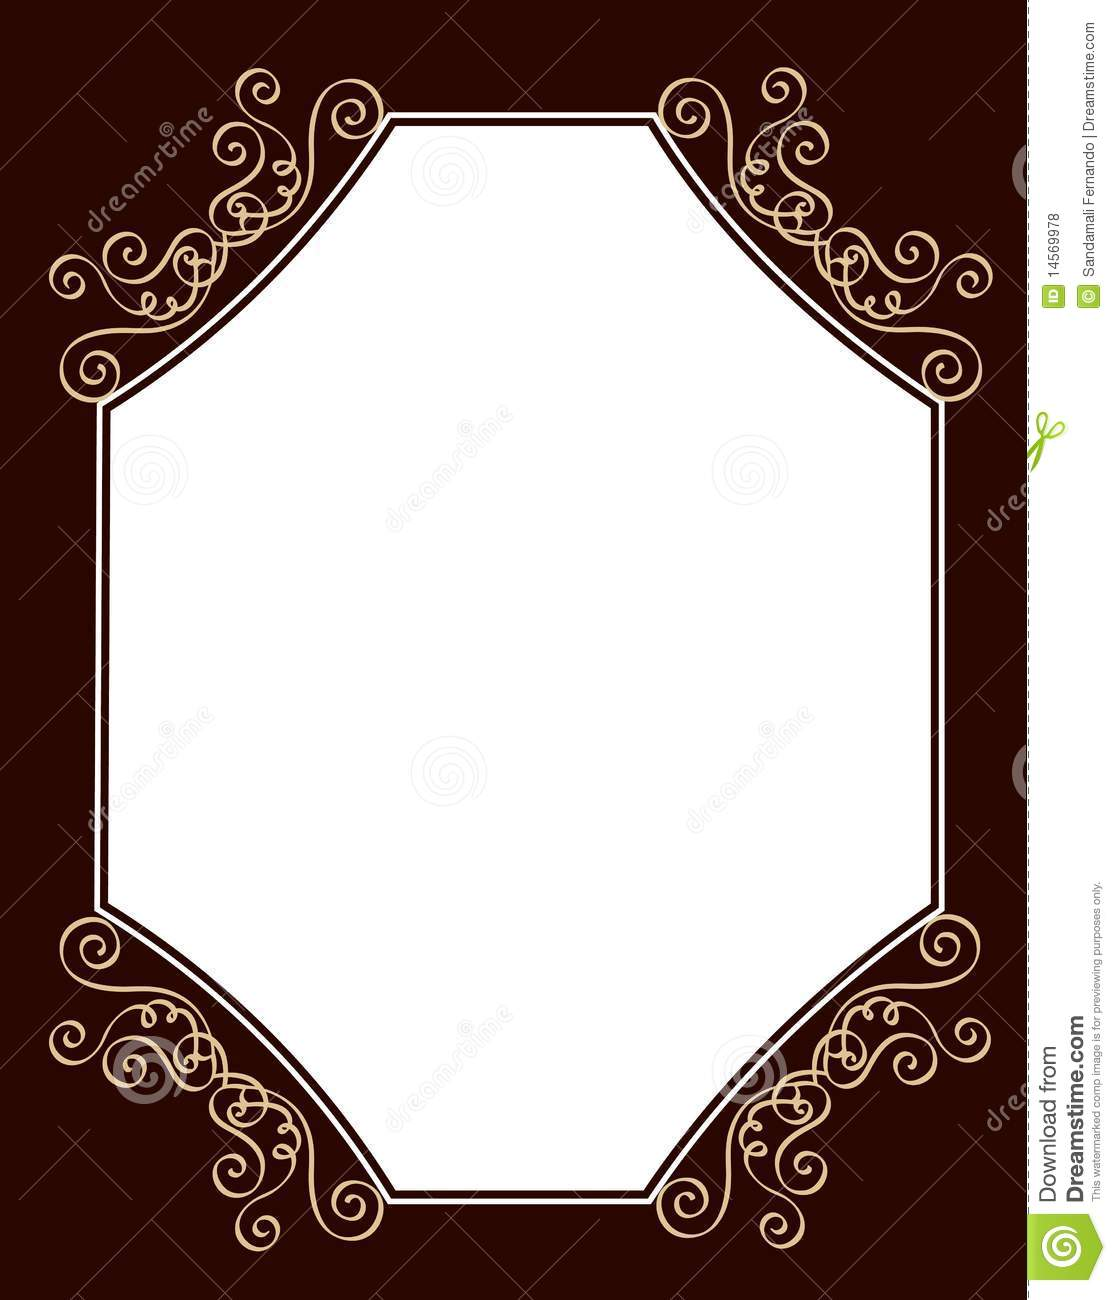 wedding invitation template stock vector illustration of backdrop